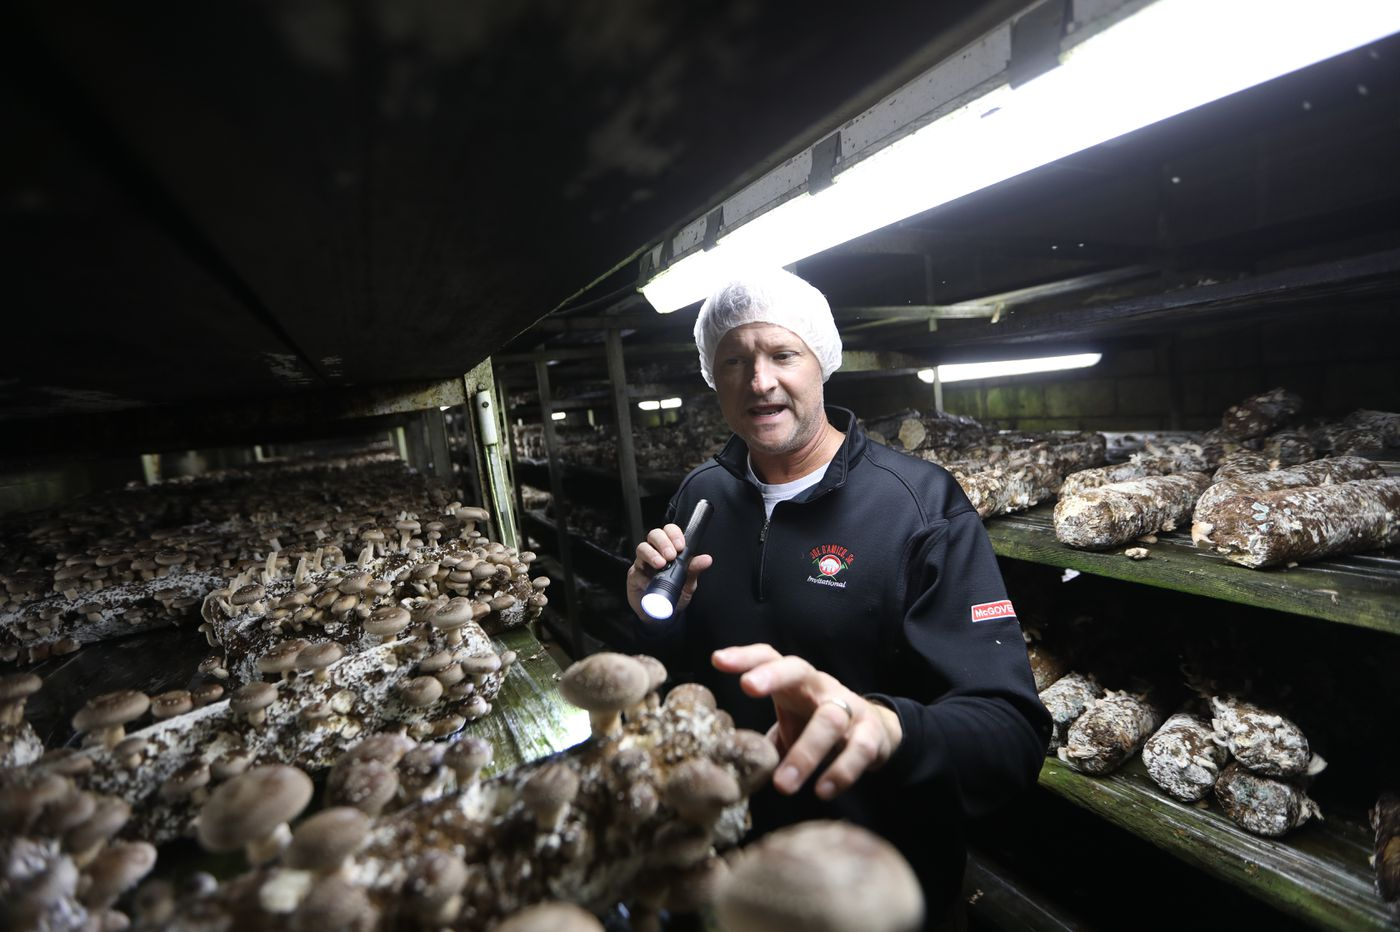 Mushroom politics: Chesco farms seek immigrant workers